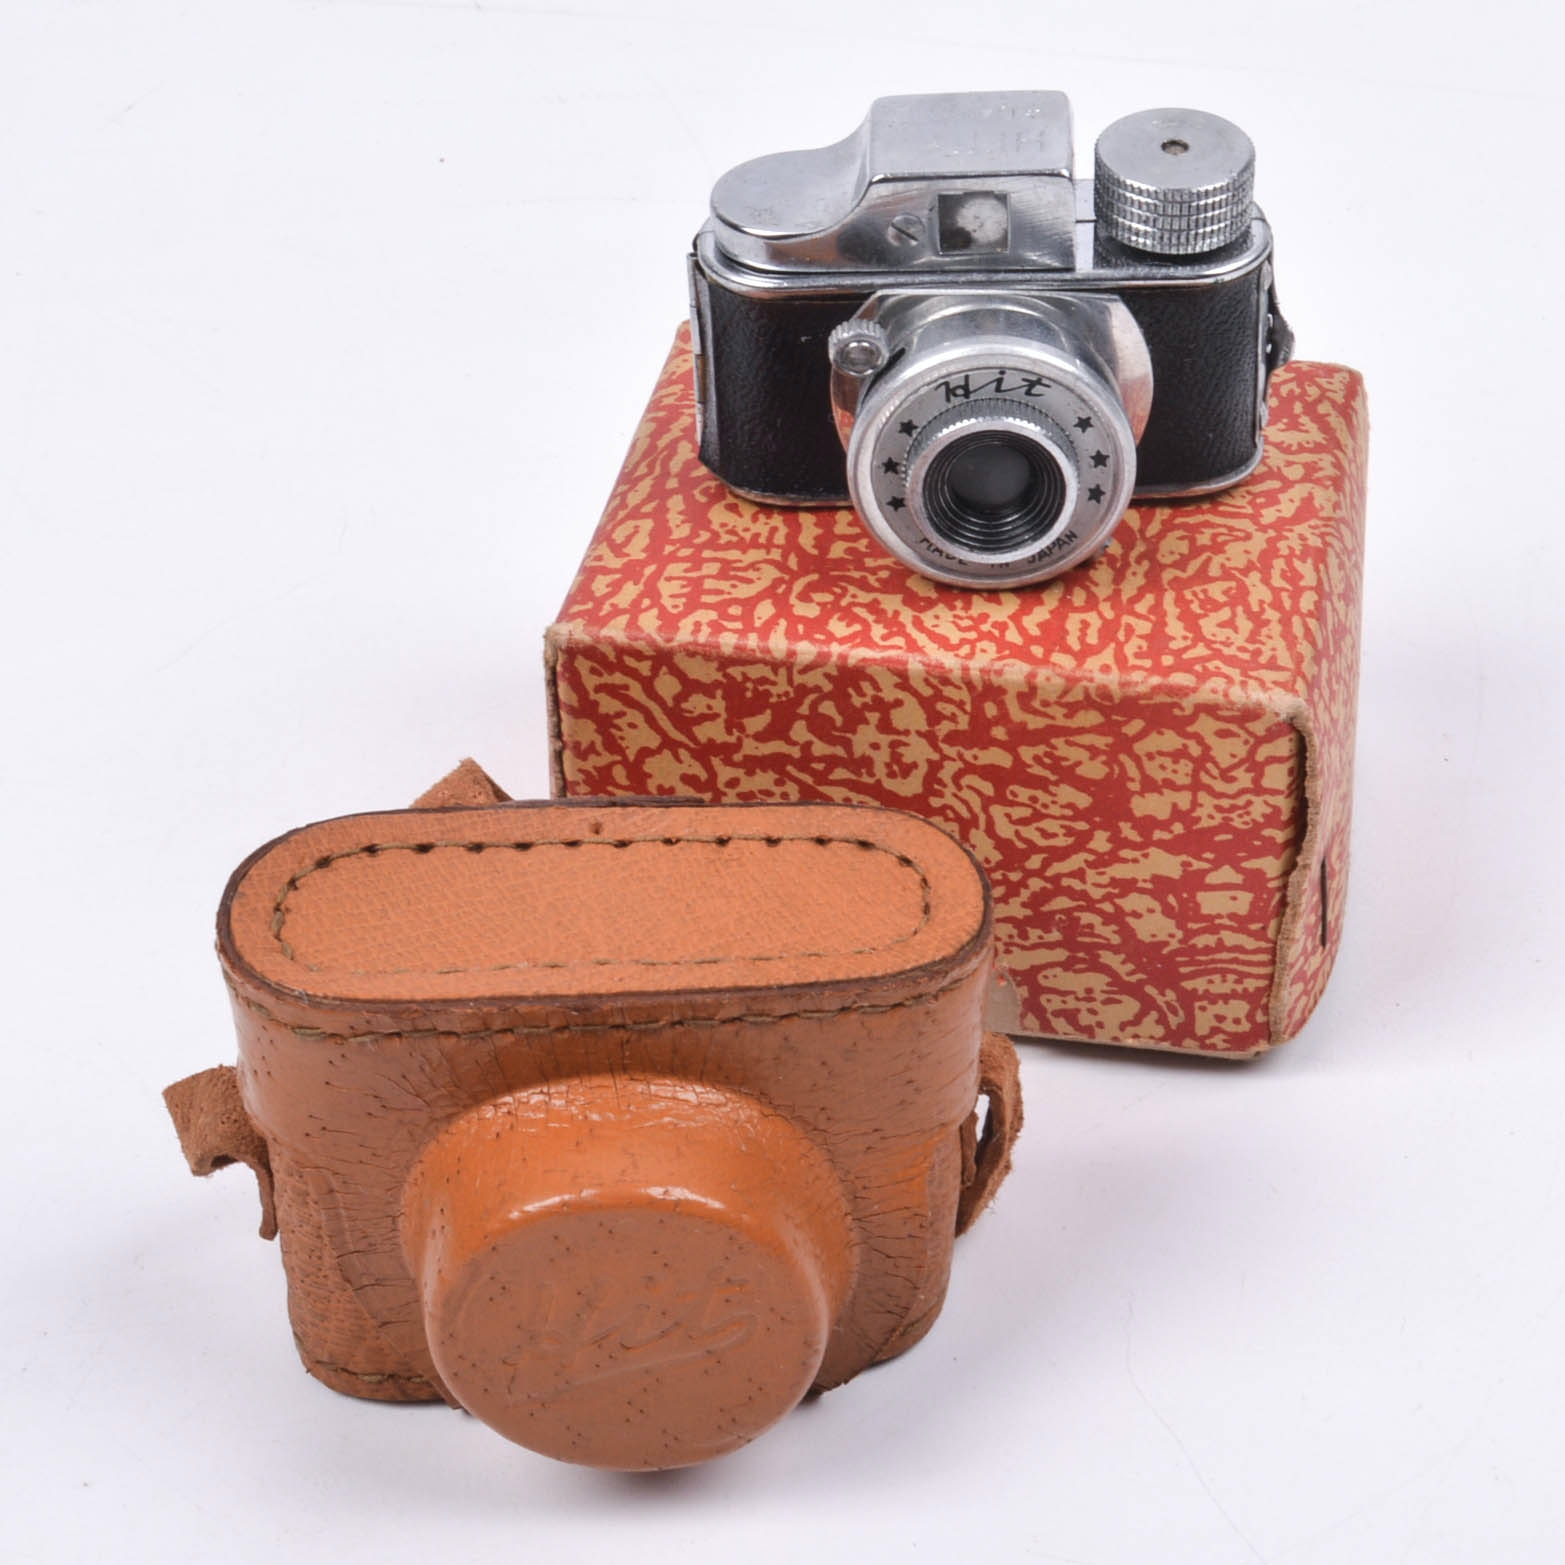 Vintage HIT Japan Miniature Spy Camera with Leather Case and Box